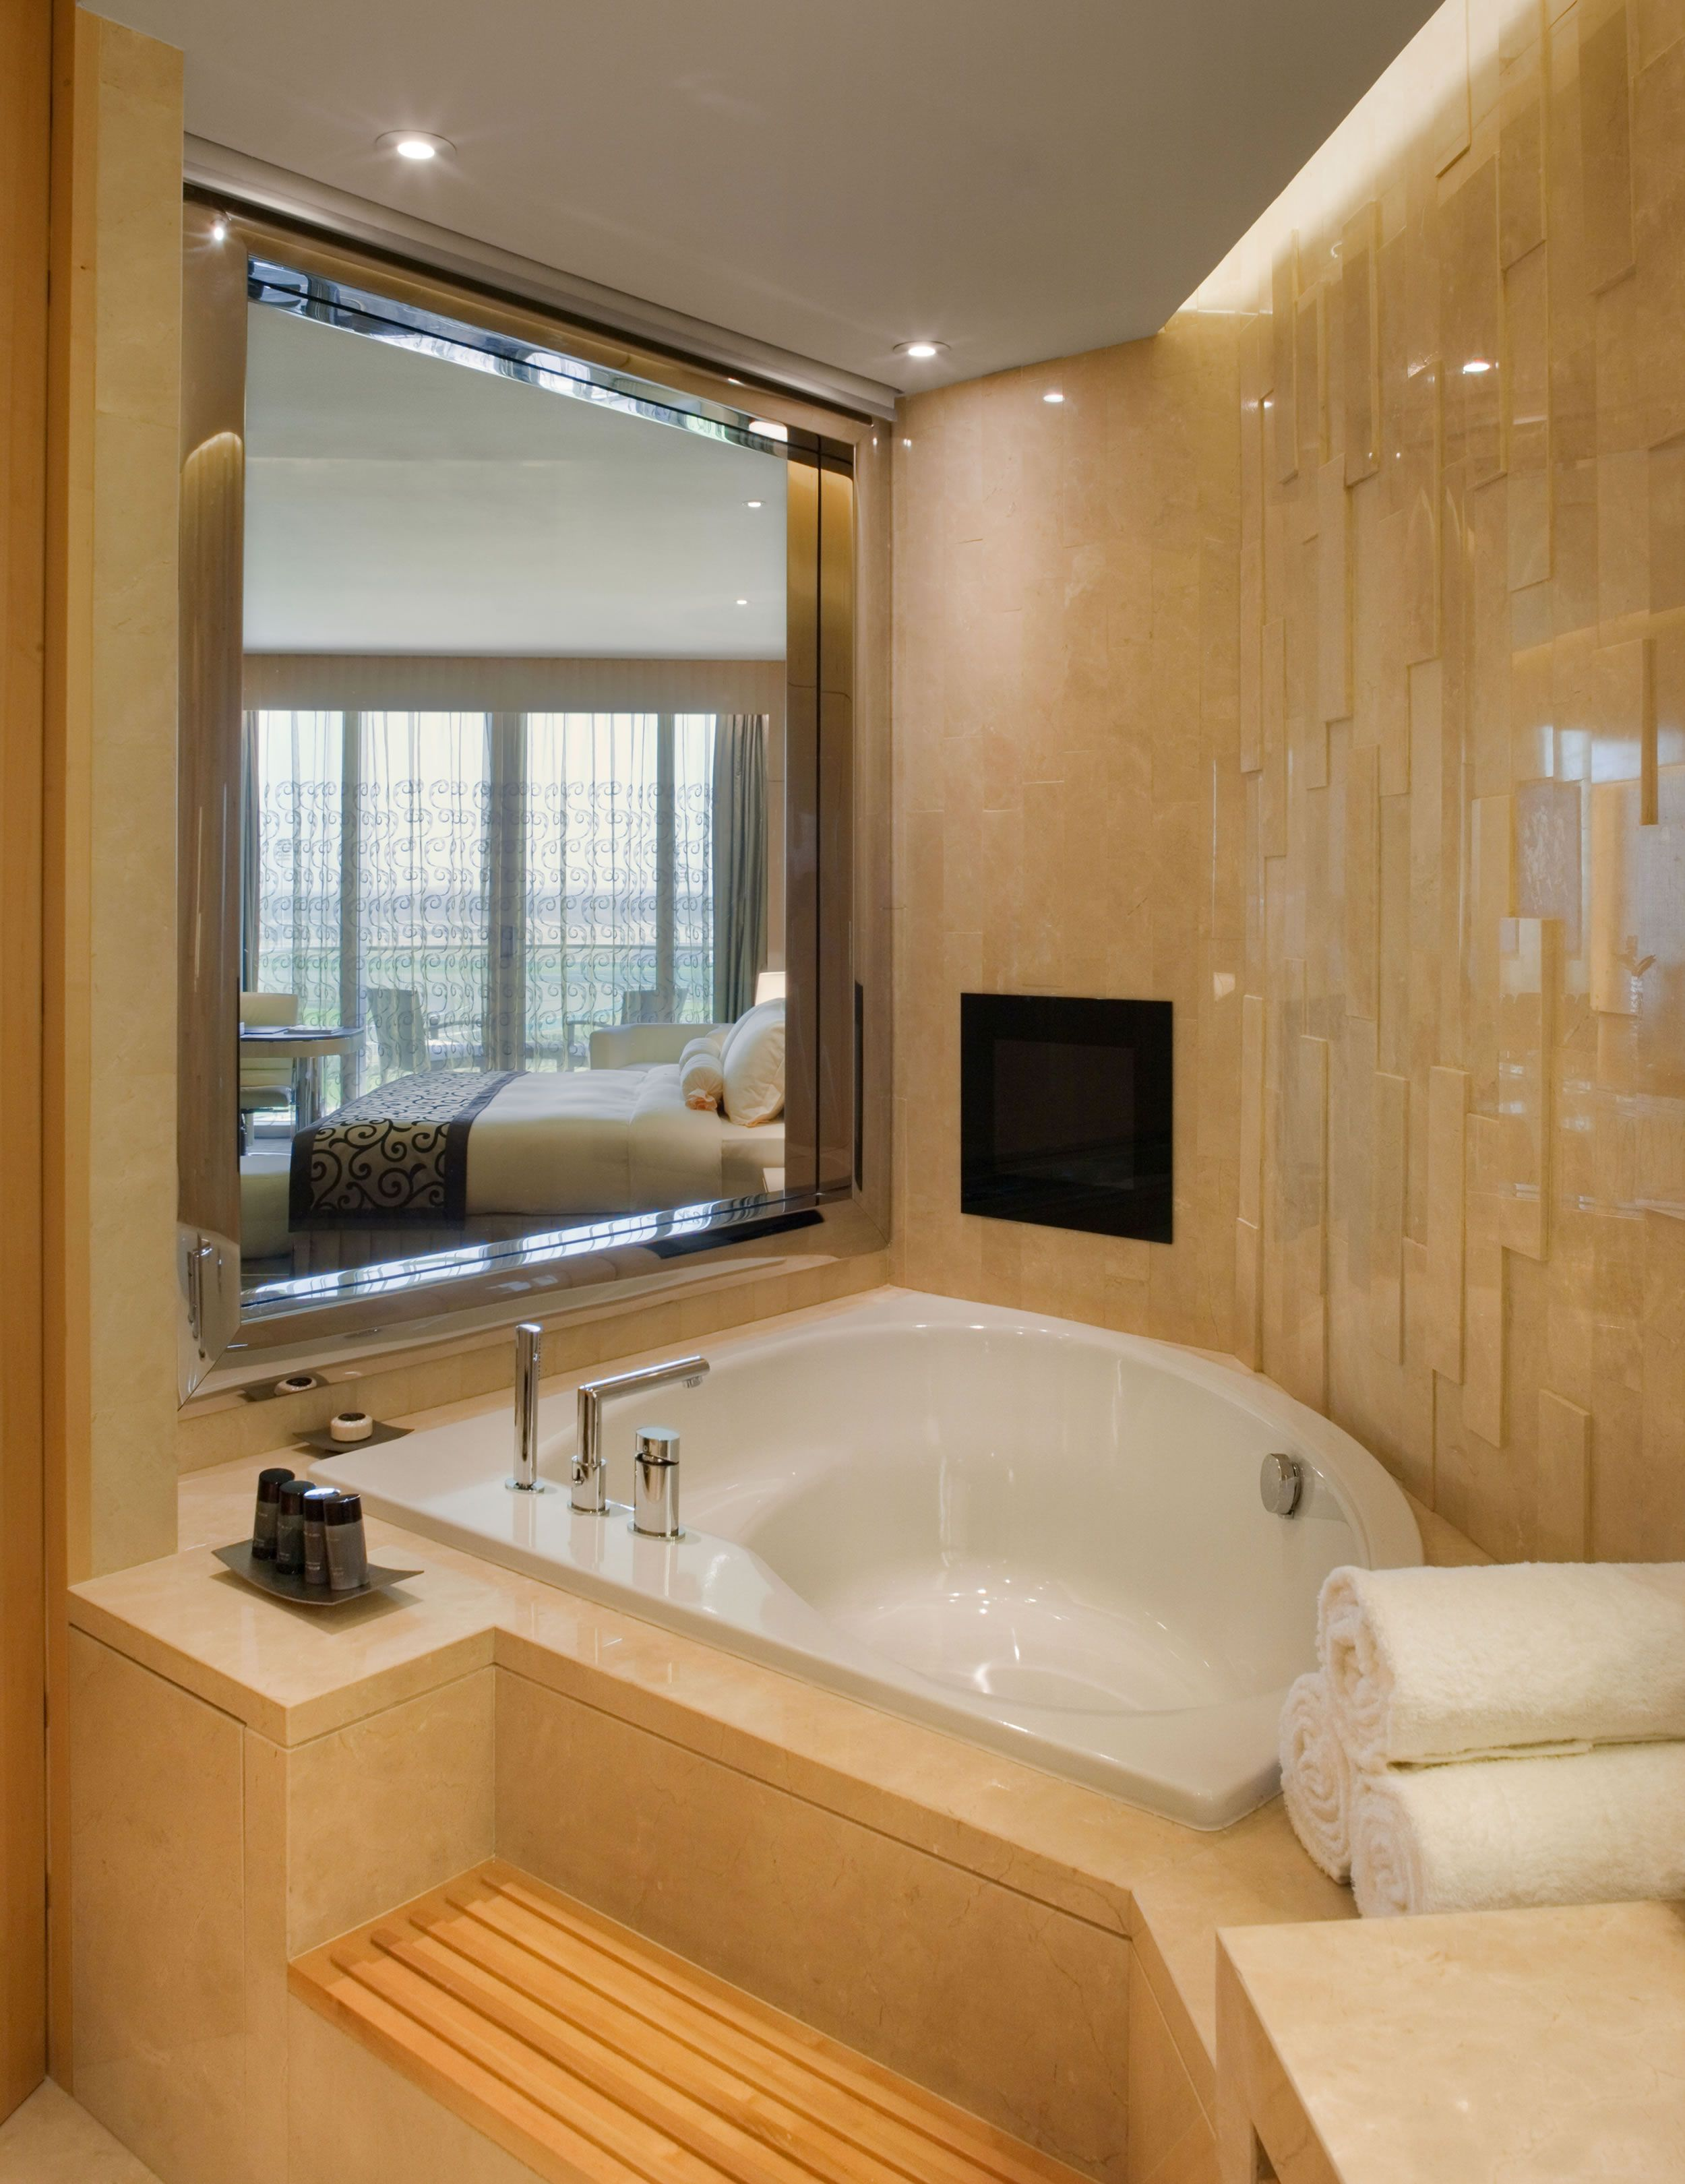 The Meydan Hotel All Rooms Have State Of Art Technology Bathrooms